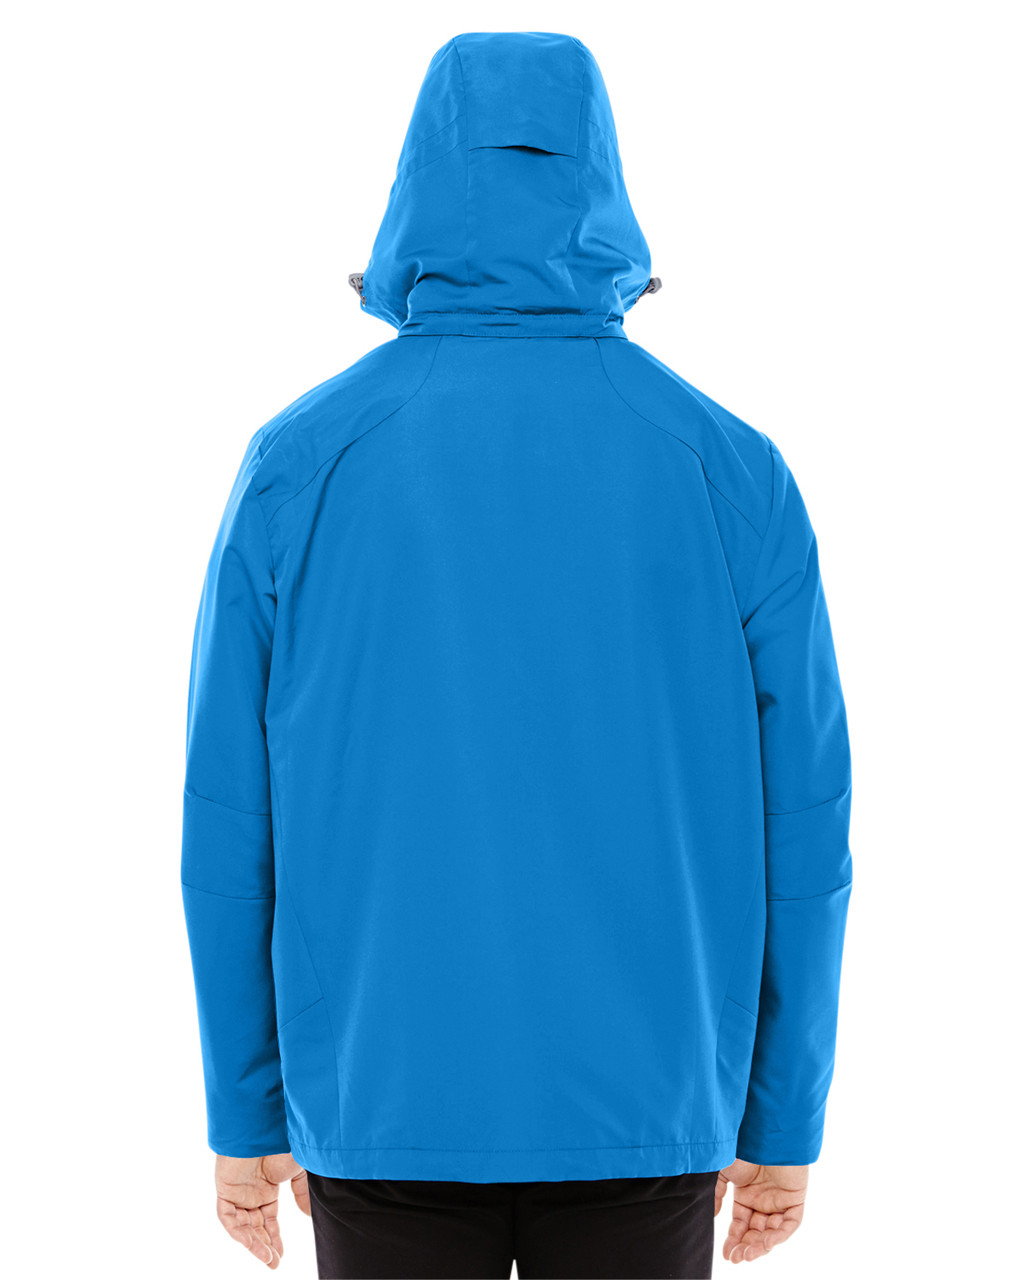 Nautical Blue/Platinum-back 88226 North End Men's Insight Interactive Shell Jacket | Blankclothing.ca